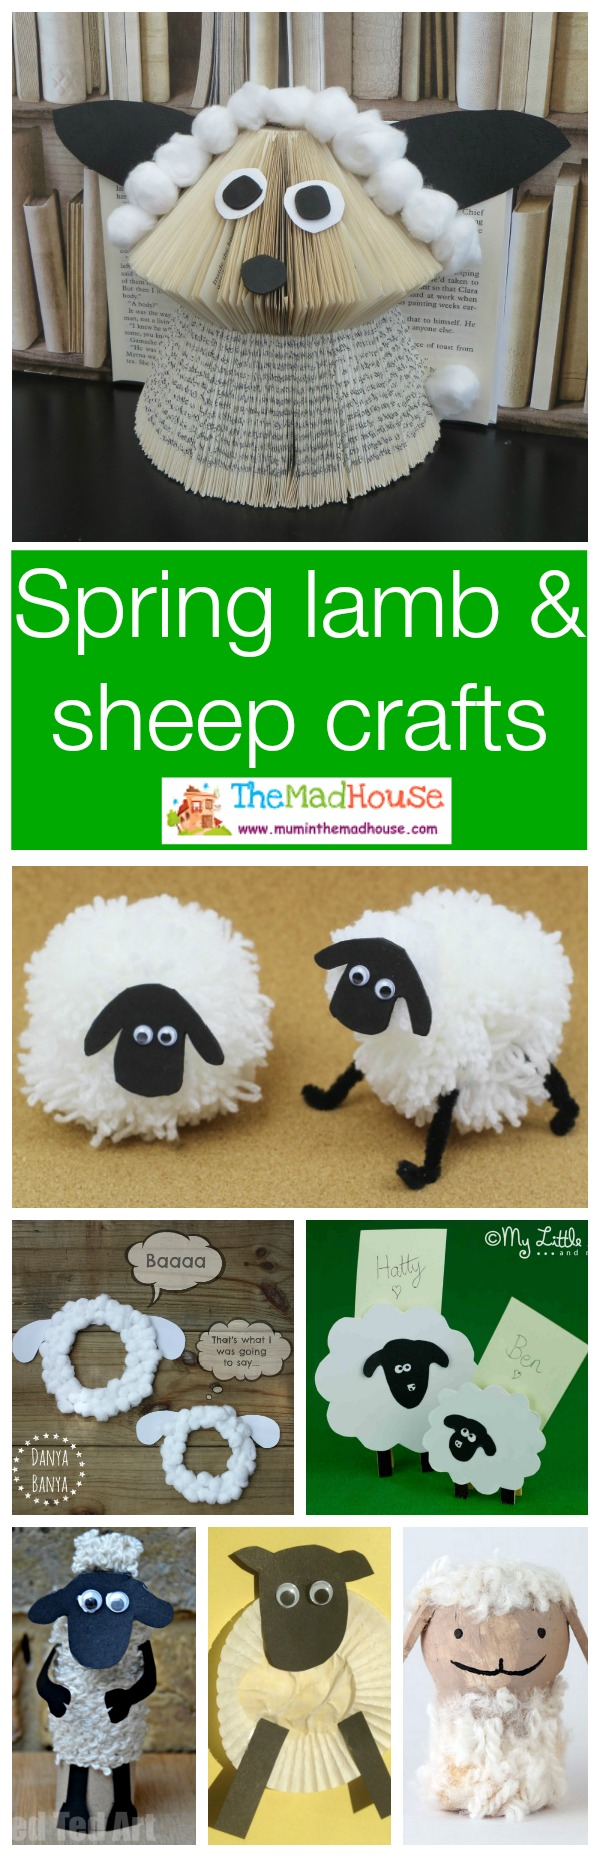 35 Spring Lamb and Sheep crafts - Mum In The Madhouse